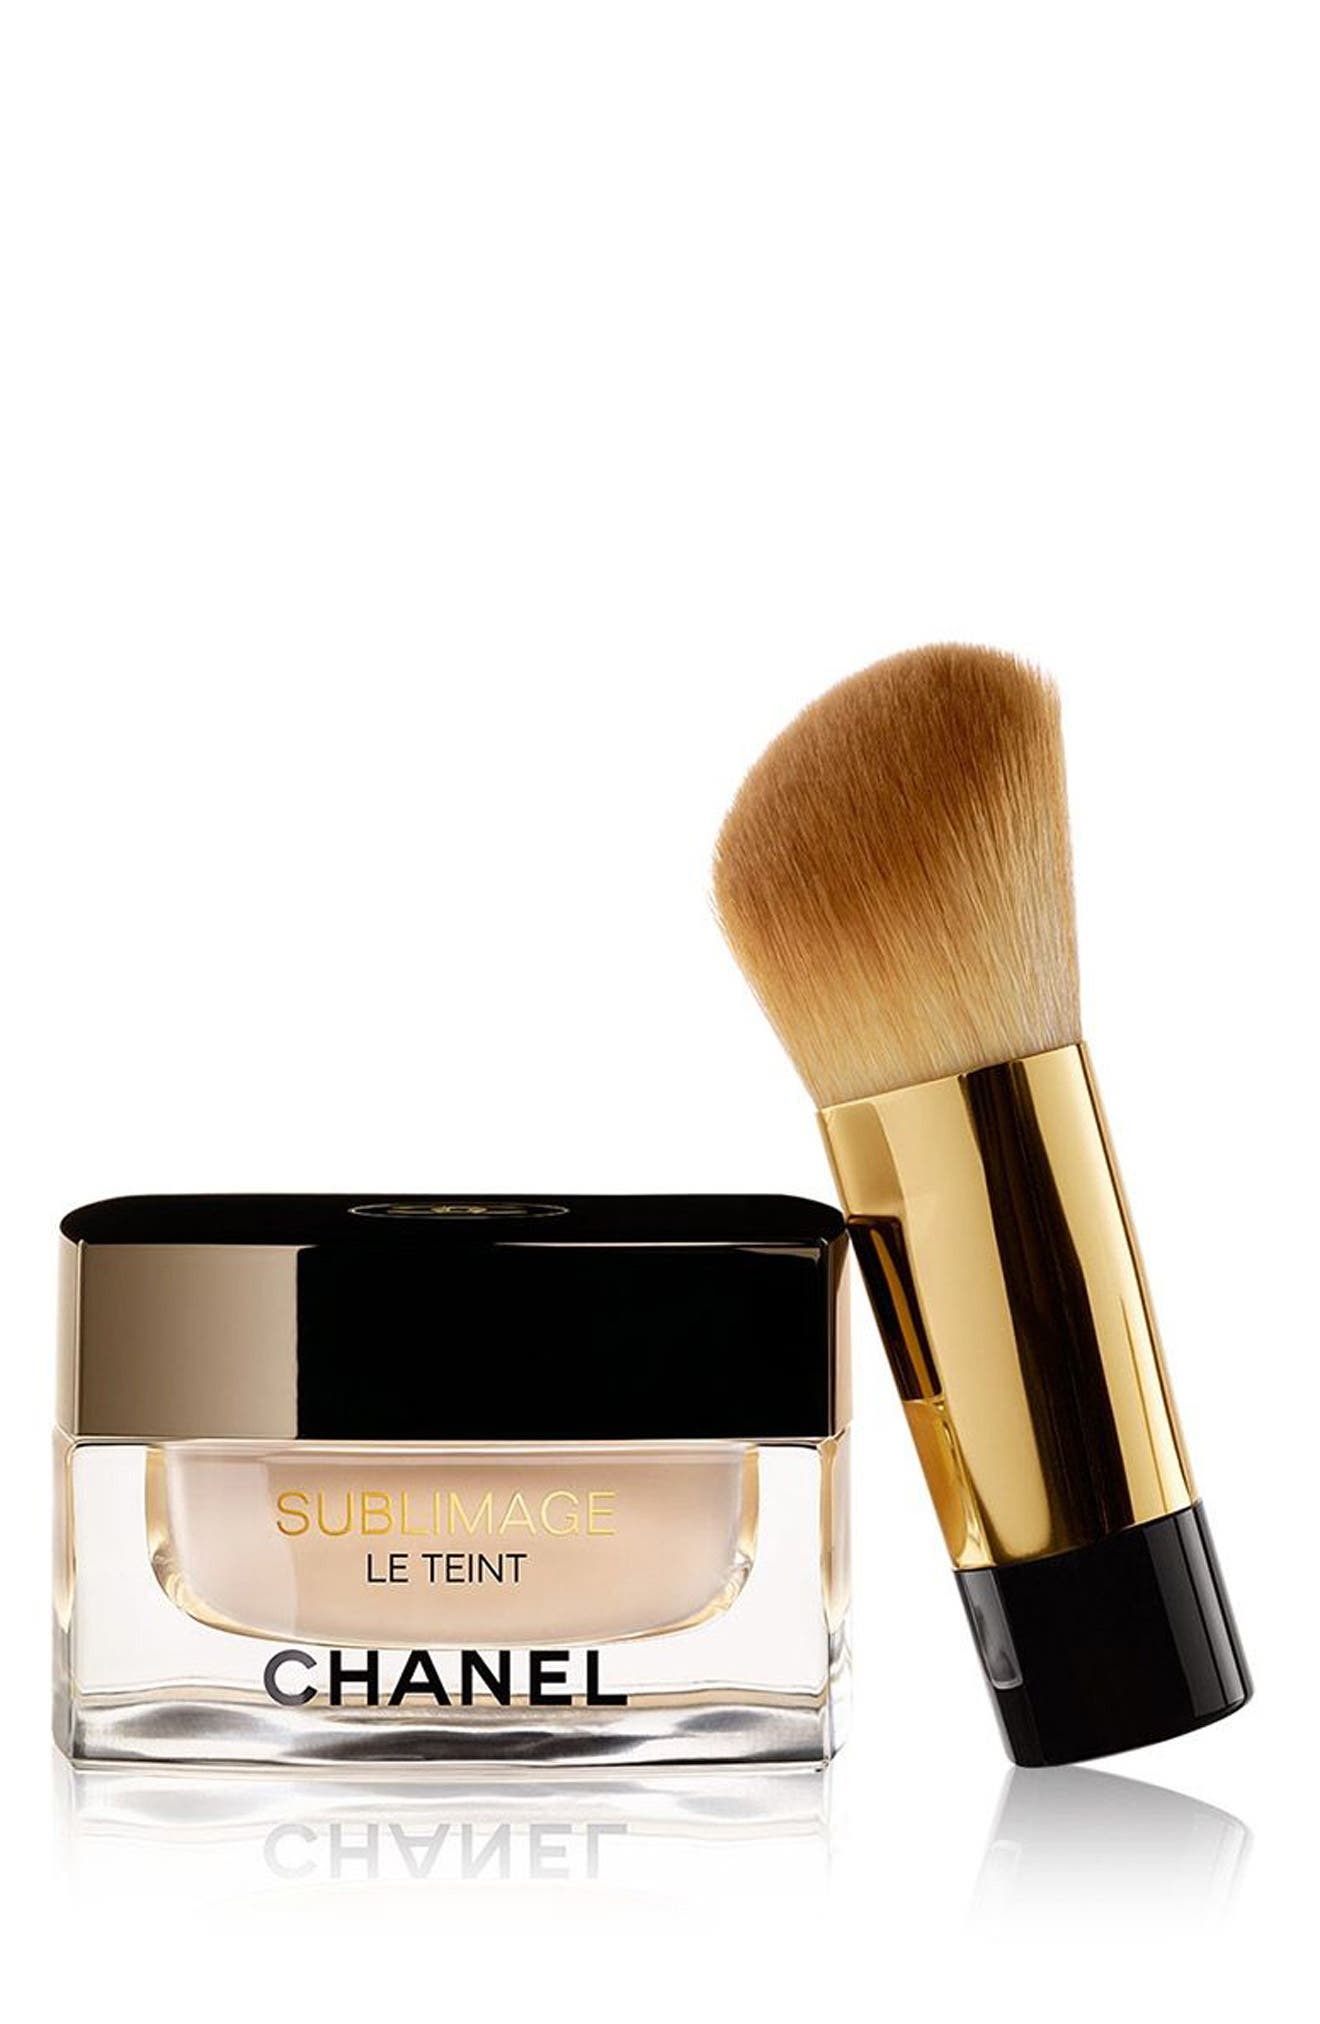 CHANEL, SUBLIMAGE LE TEINT<br />Foundation, Main thumbnail 1, color, 250